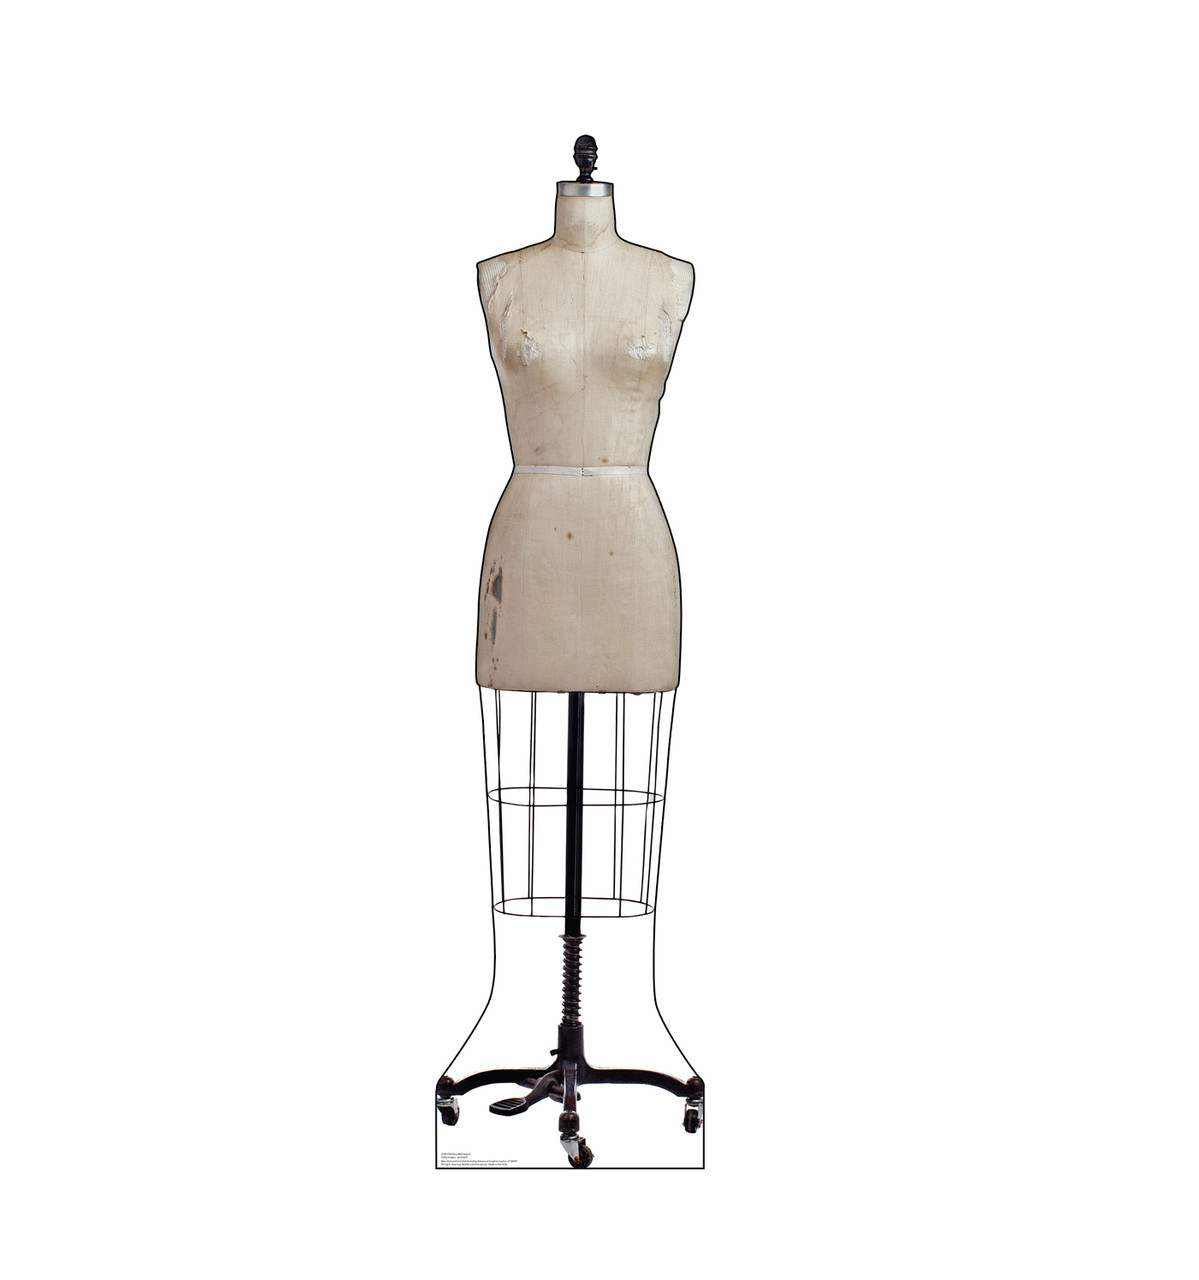 Life-size cardboard standee of an Old Dress Mannequin.